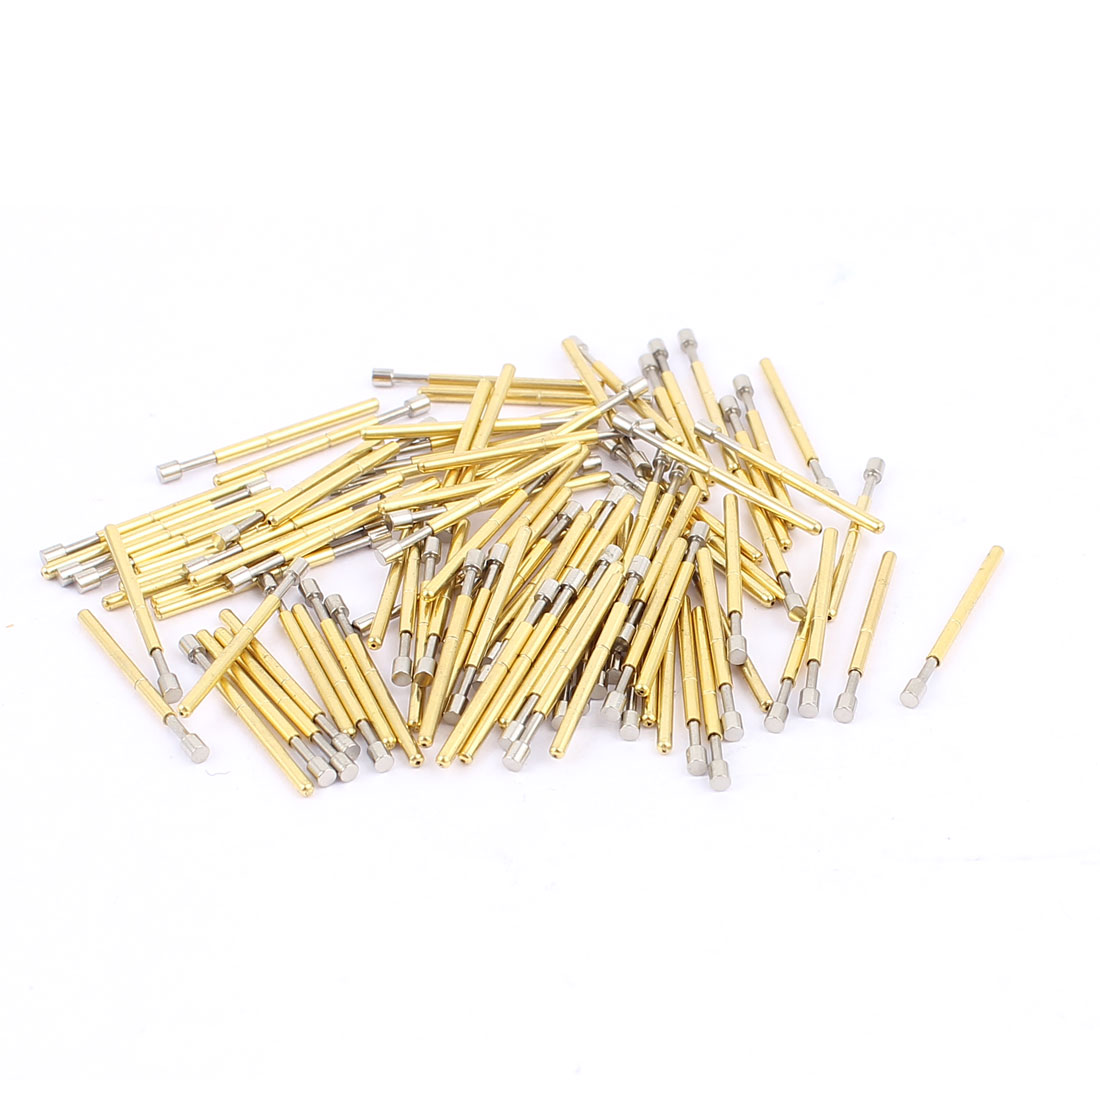 100pcs P75-G 1.3mm Diameter Flat Tip 16.5mm Spring Loaded Test Probes Testing Pins for PCB Board